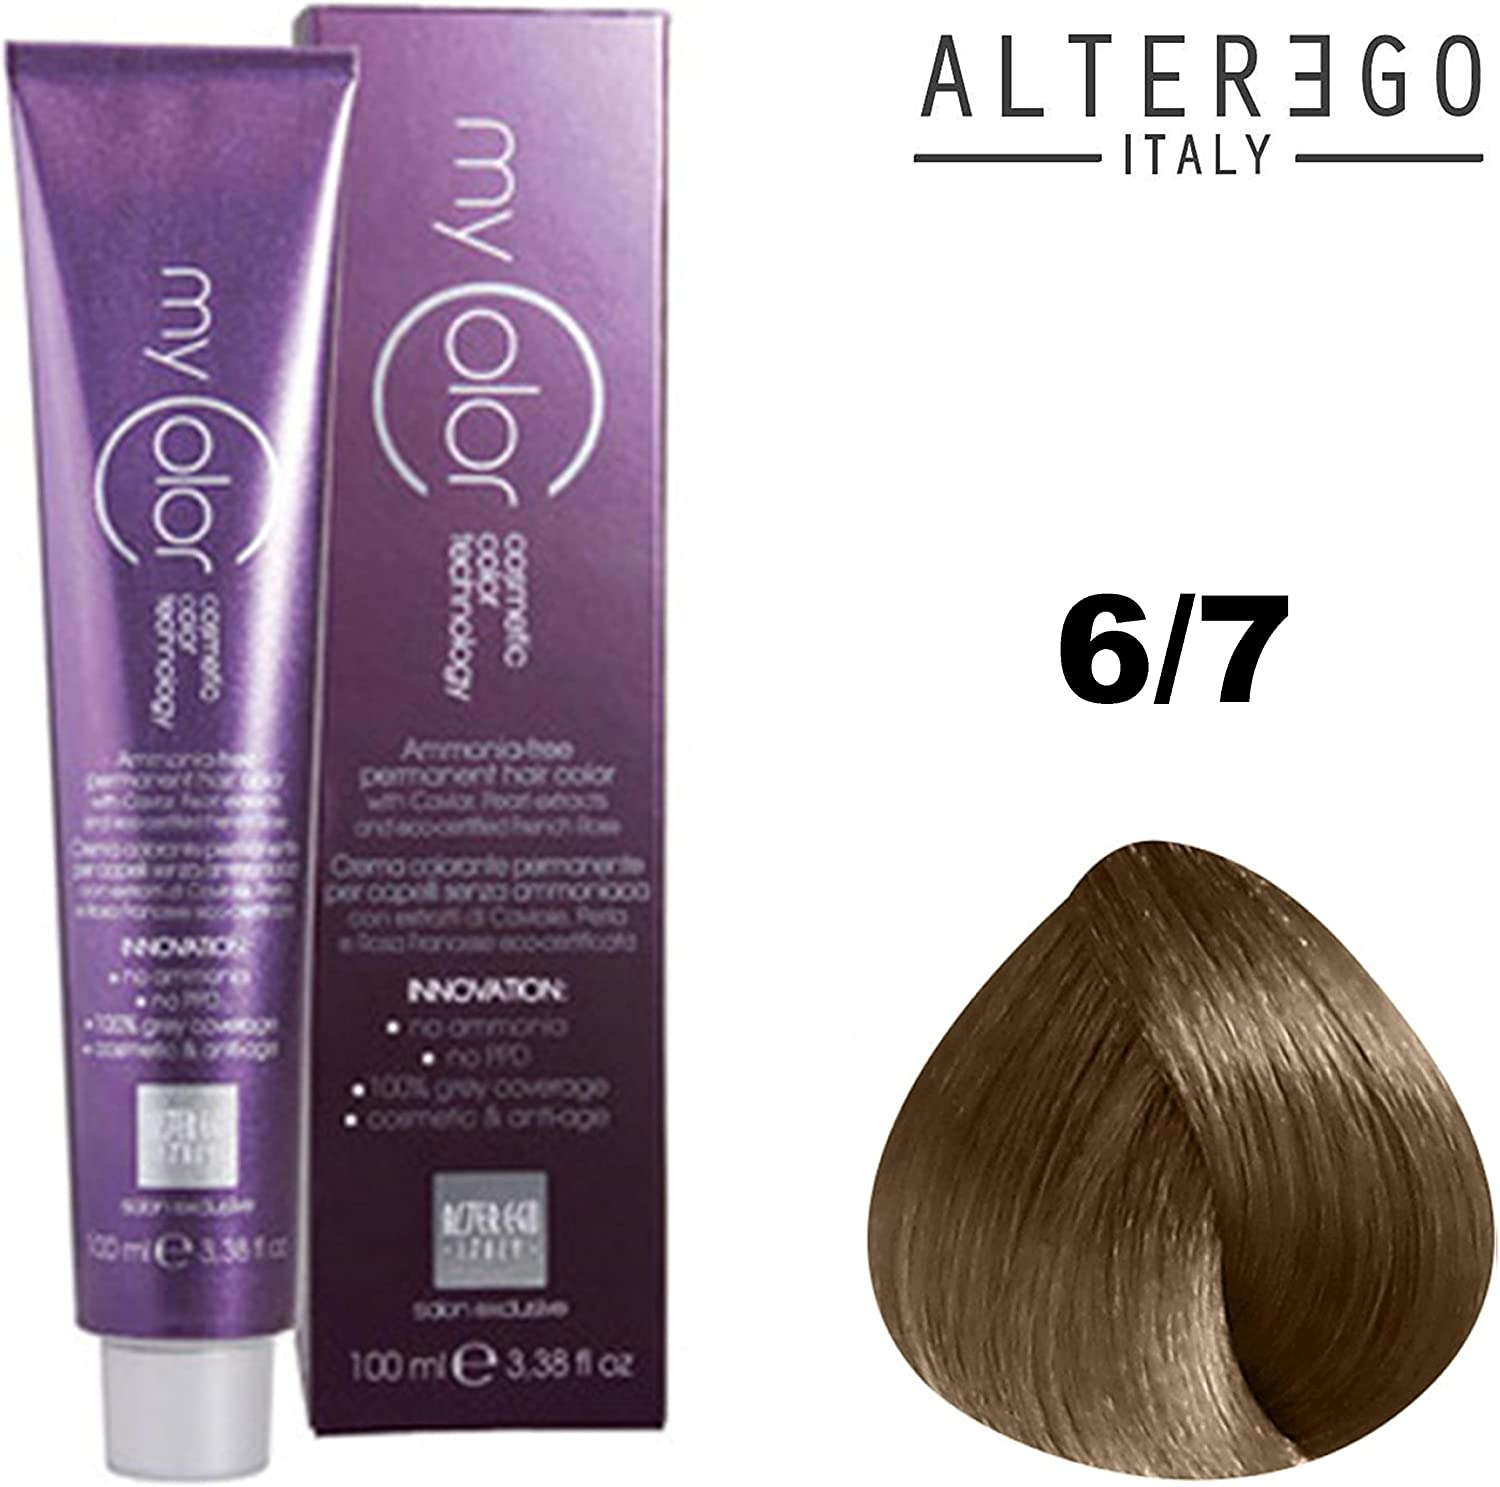 Alterego Ae My Color 100 ml 6/7